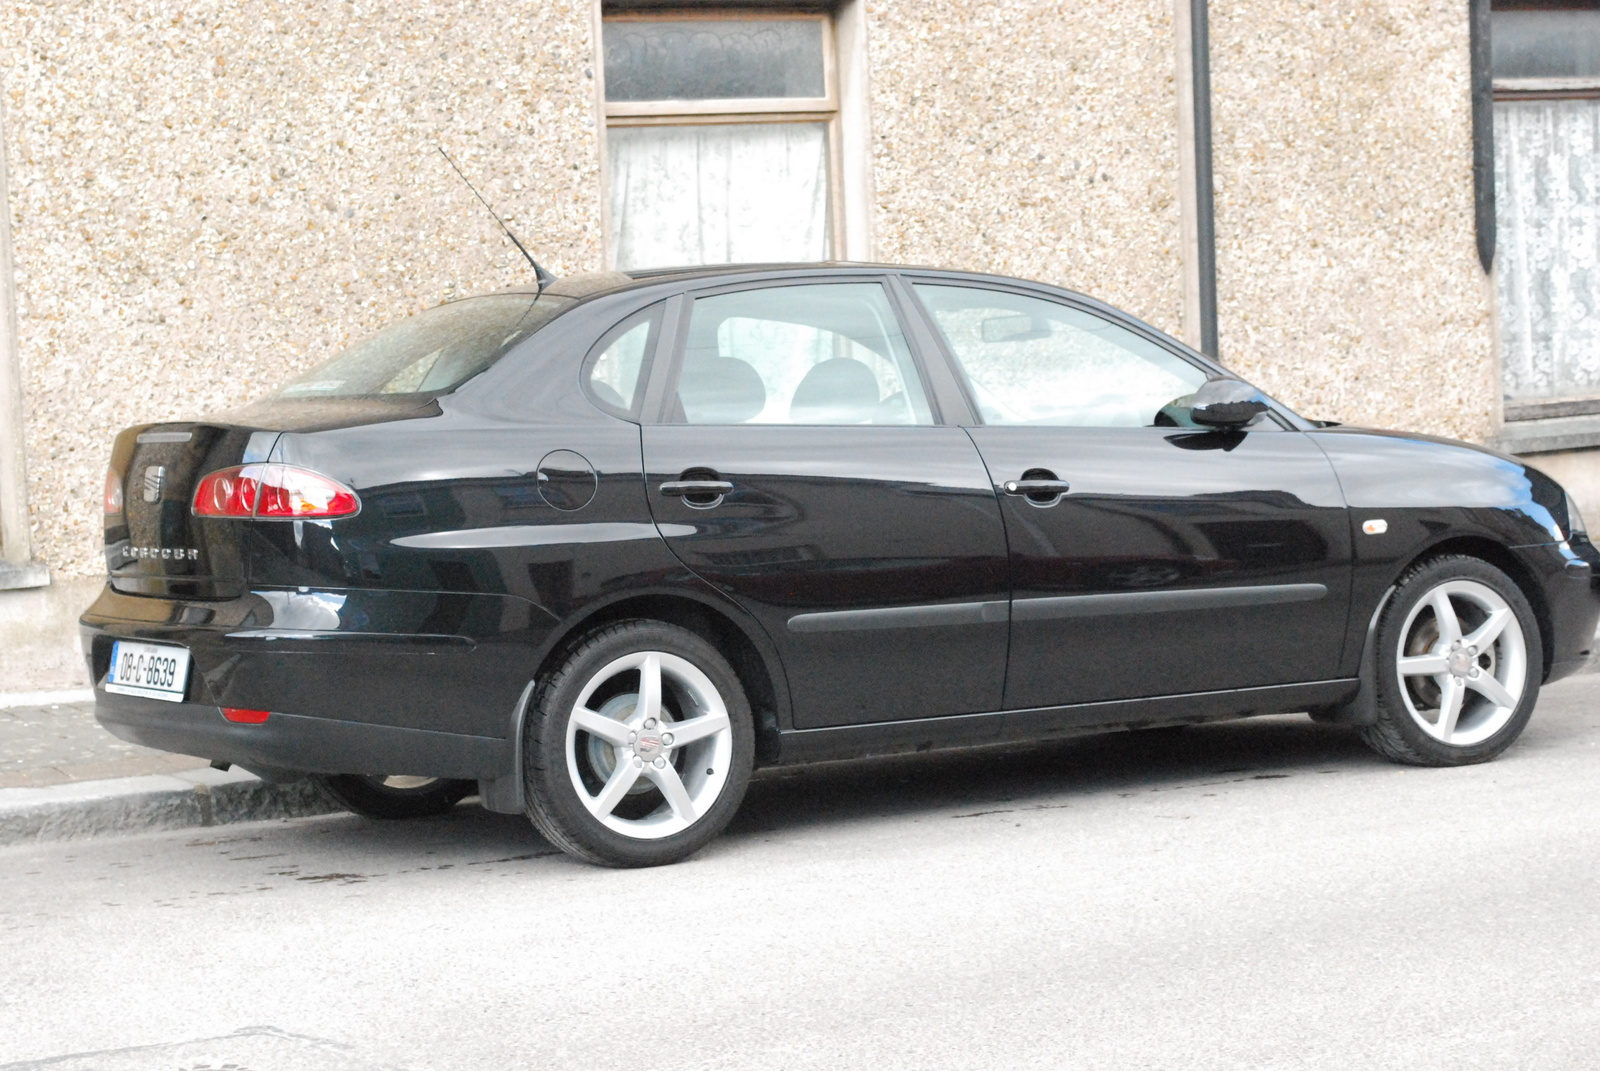 Picture of 2008 Seat Cordoba, exterior